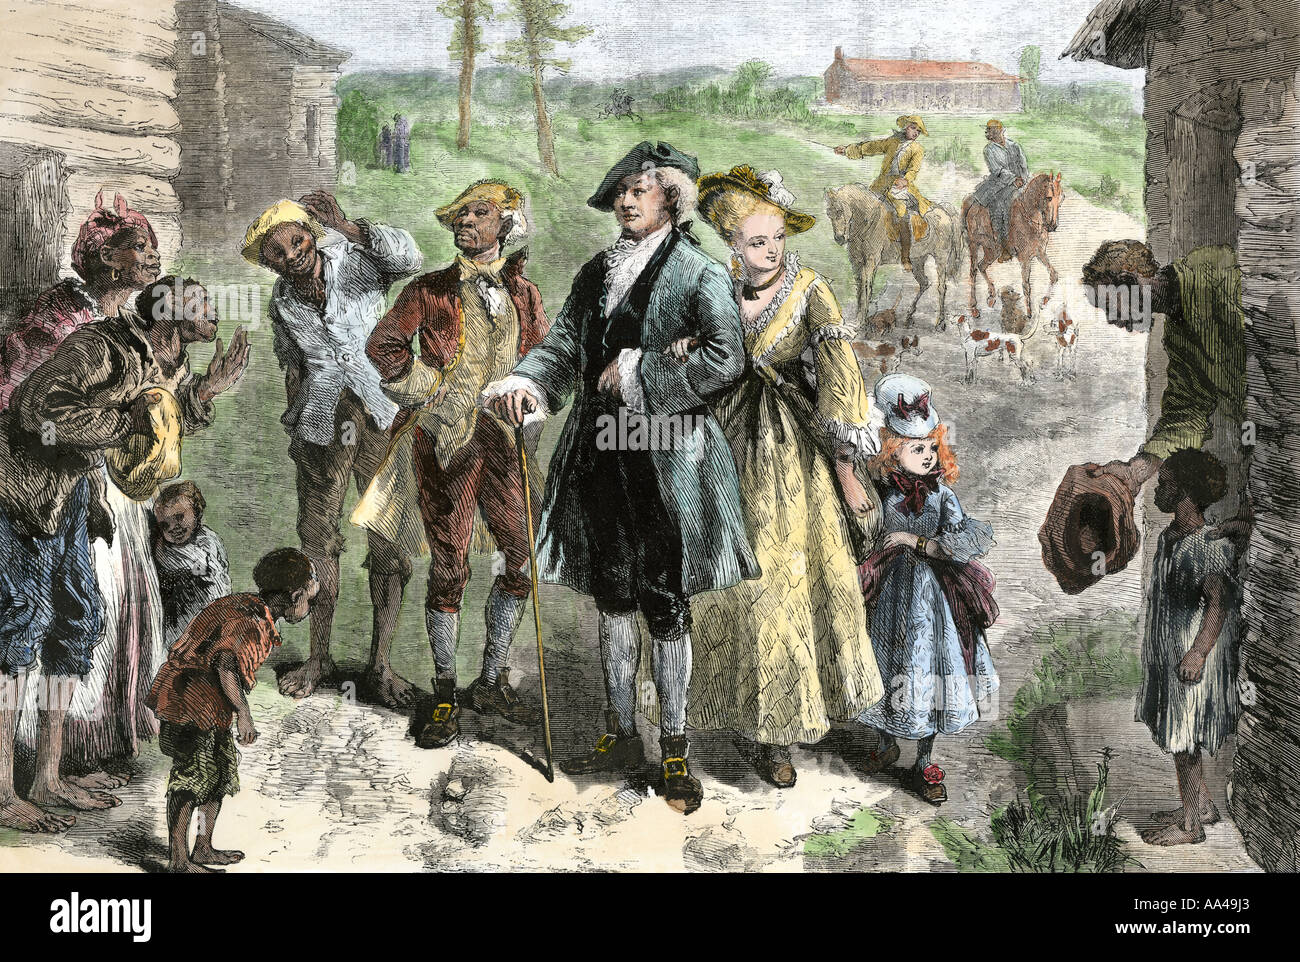 Slaves greeting plantation owner family visiting the slave quarters in Virginia 1700s. Hand-colored woodcut - Stock Image